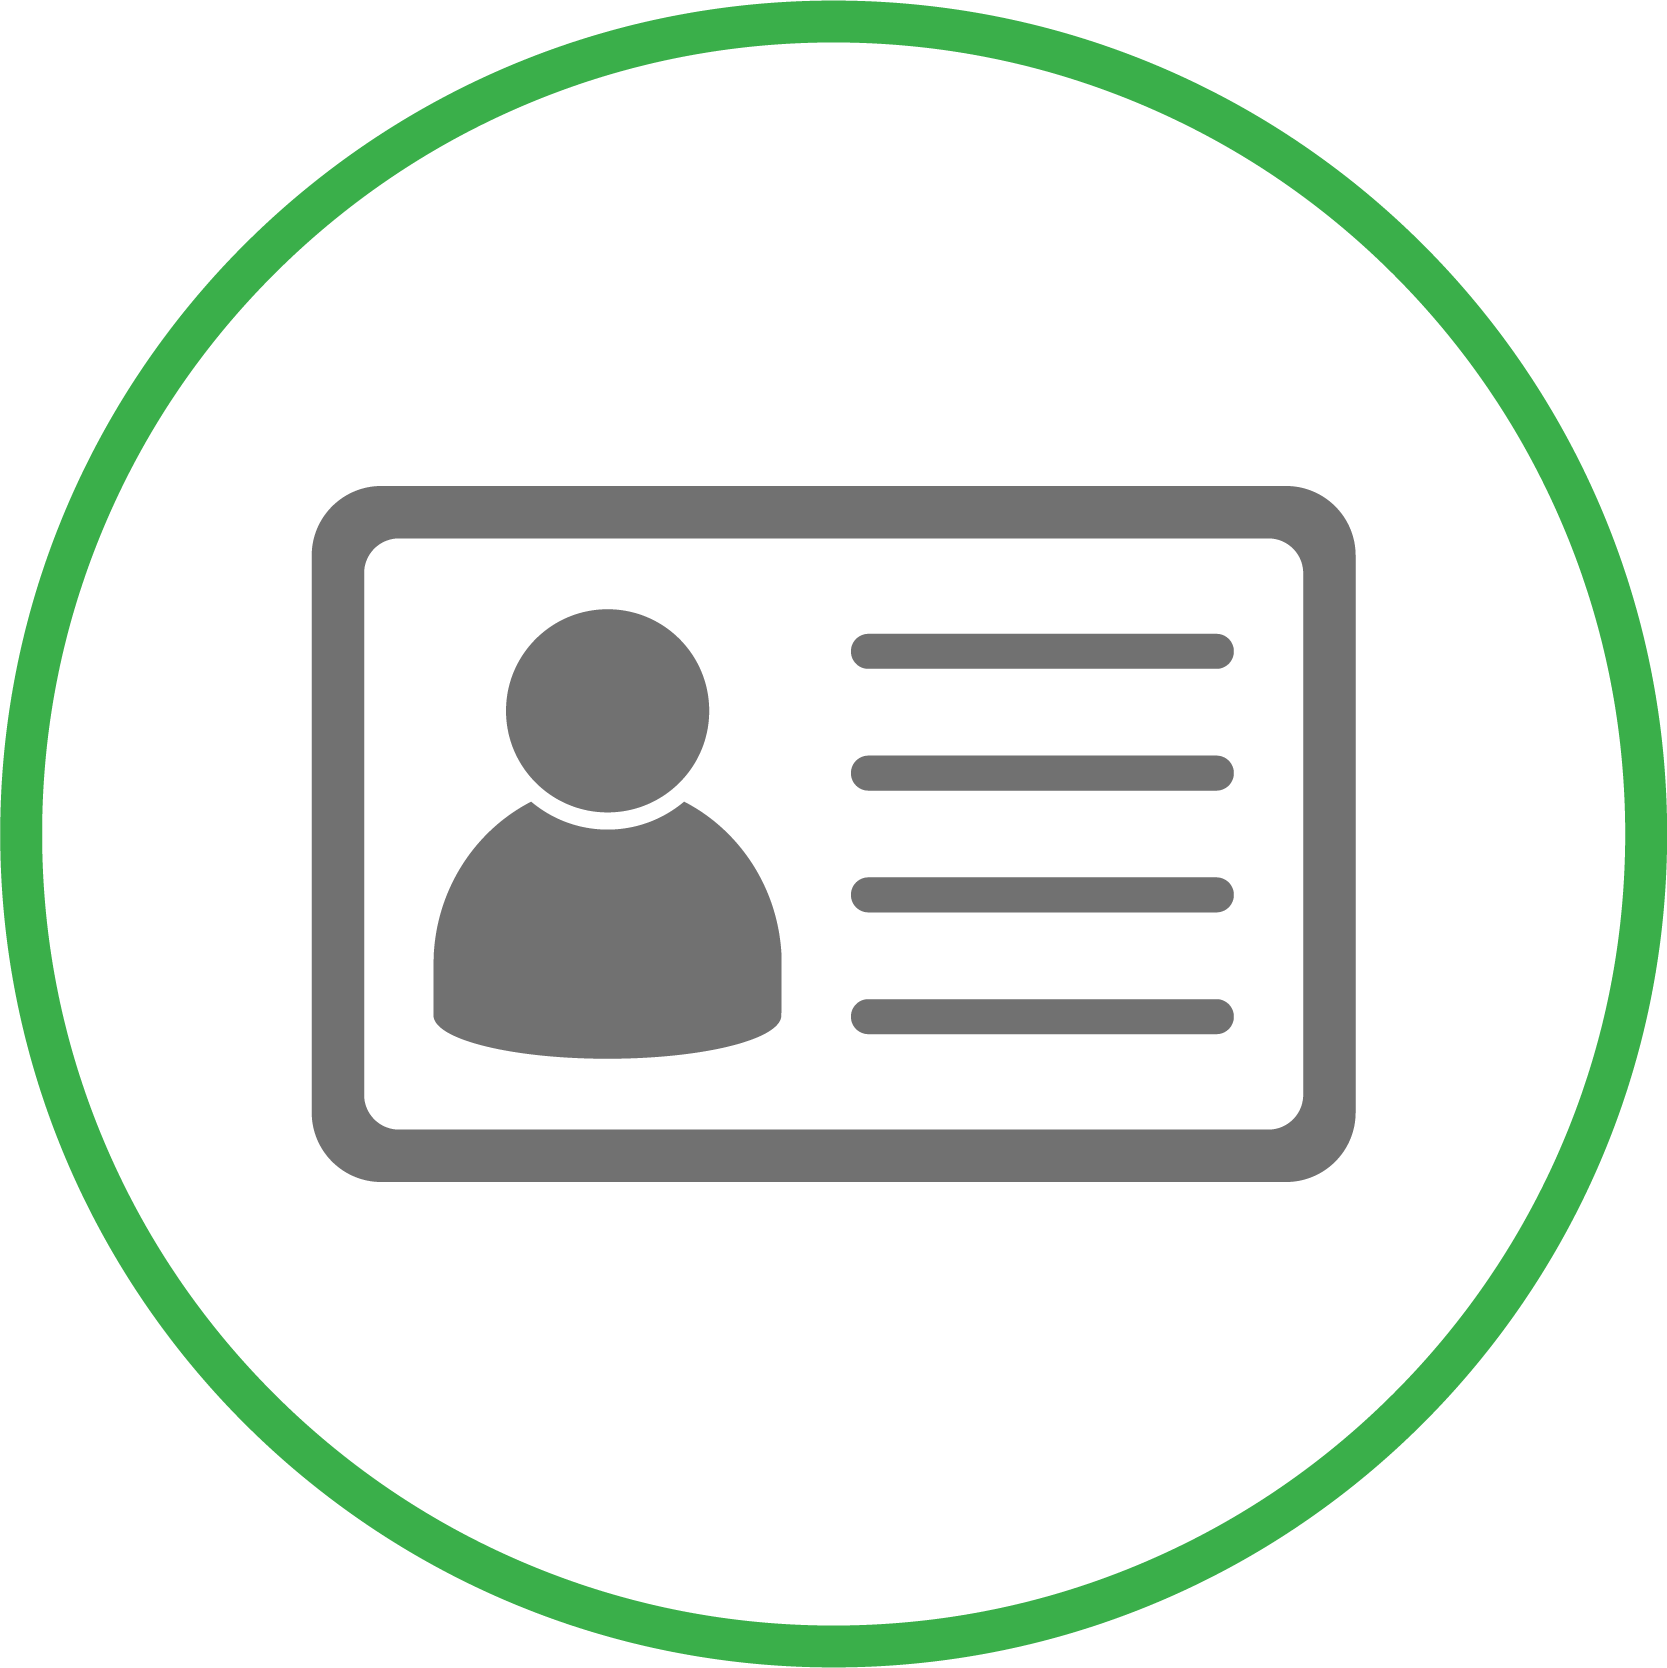 Icon Image | Employee Identification